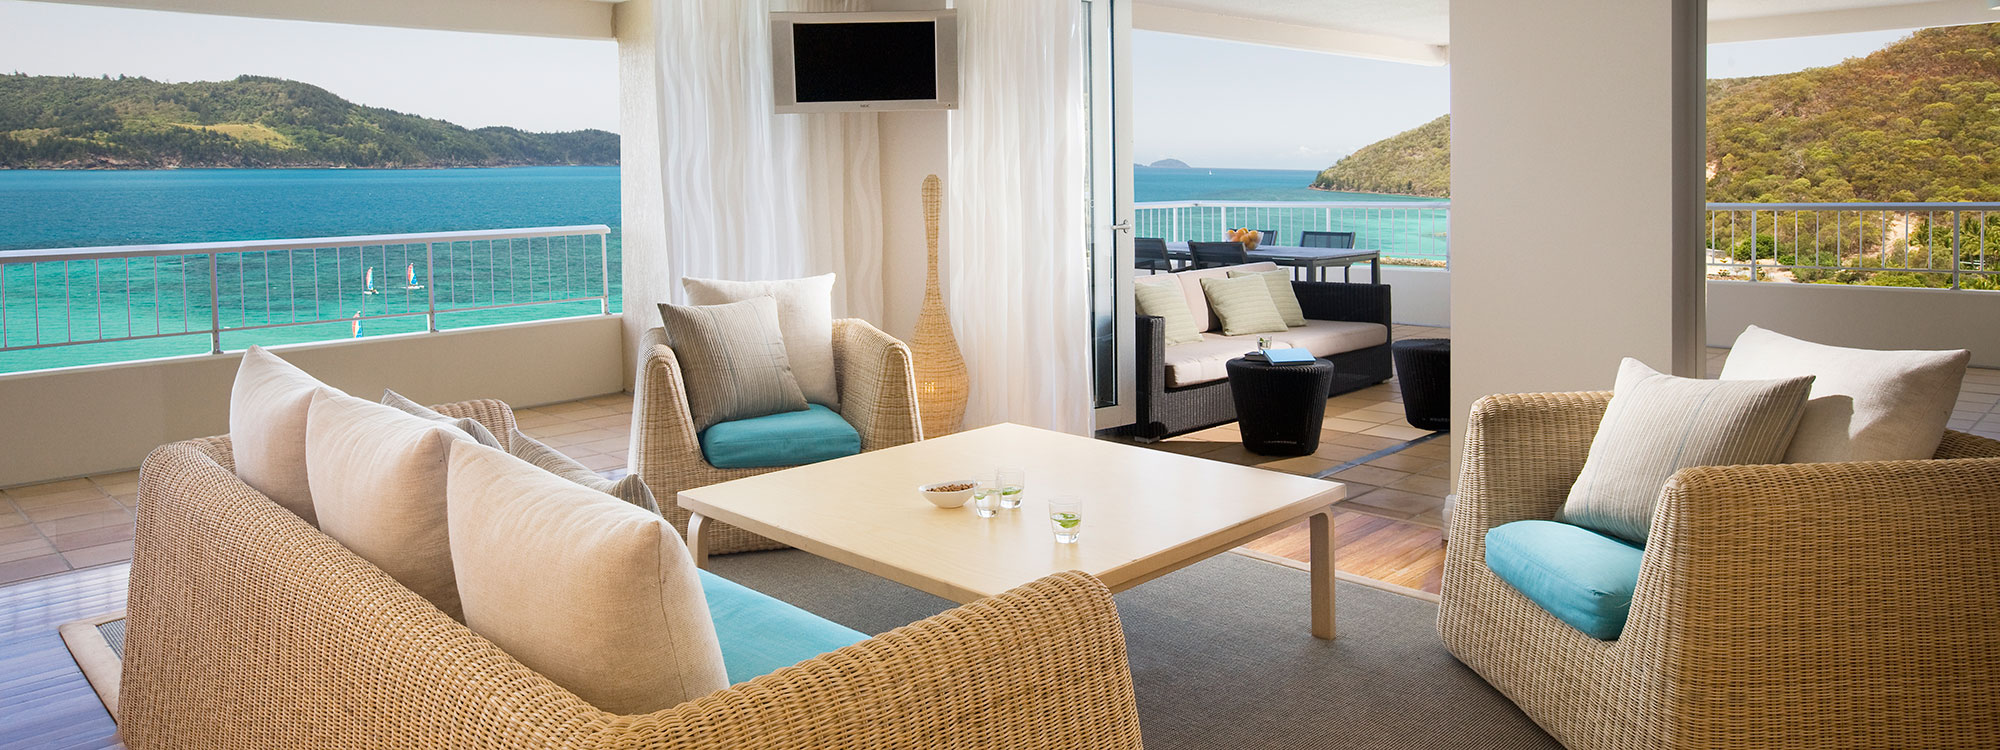 Reef-View-Terrace-Suite-1-bed.jpg-banner-2000